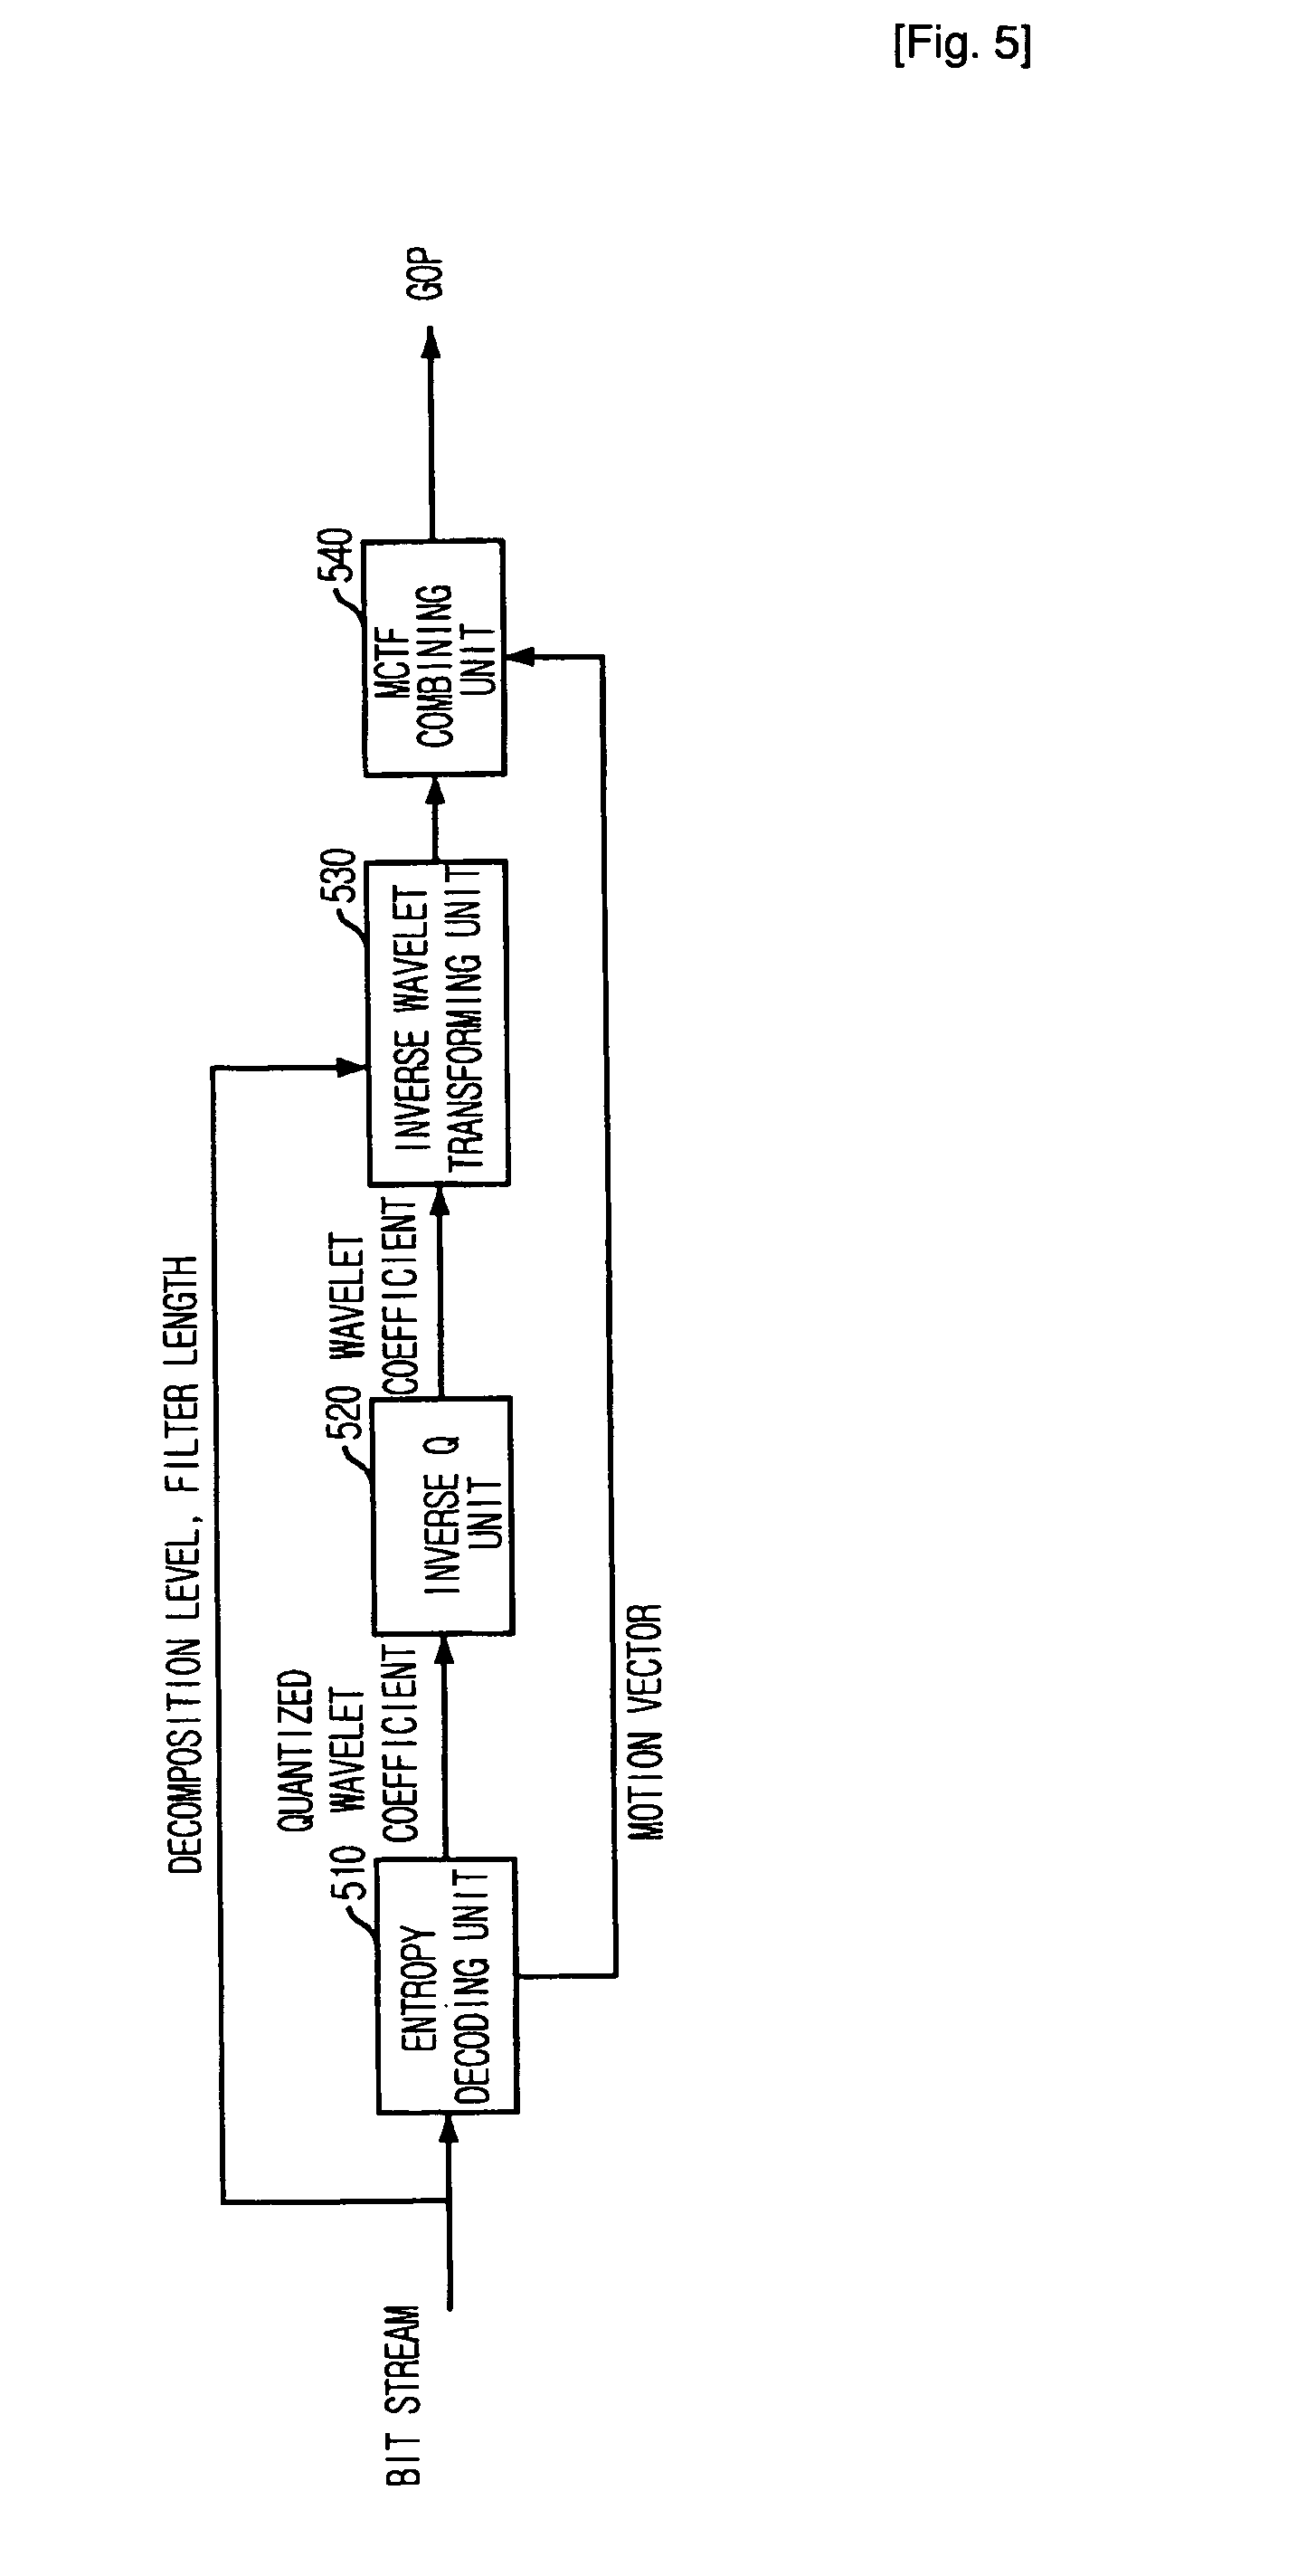 Patent US20070081593 - Interframe wavelet coding apparatus and